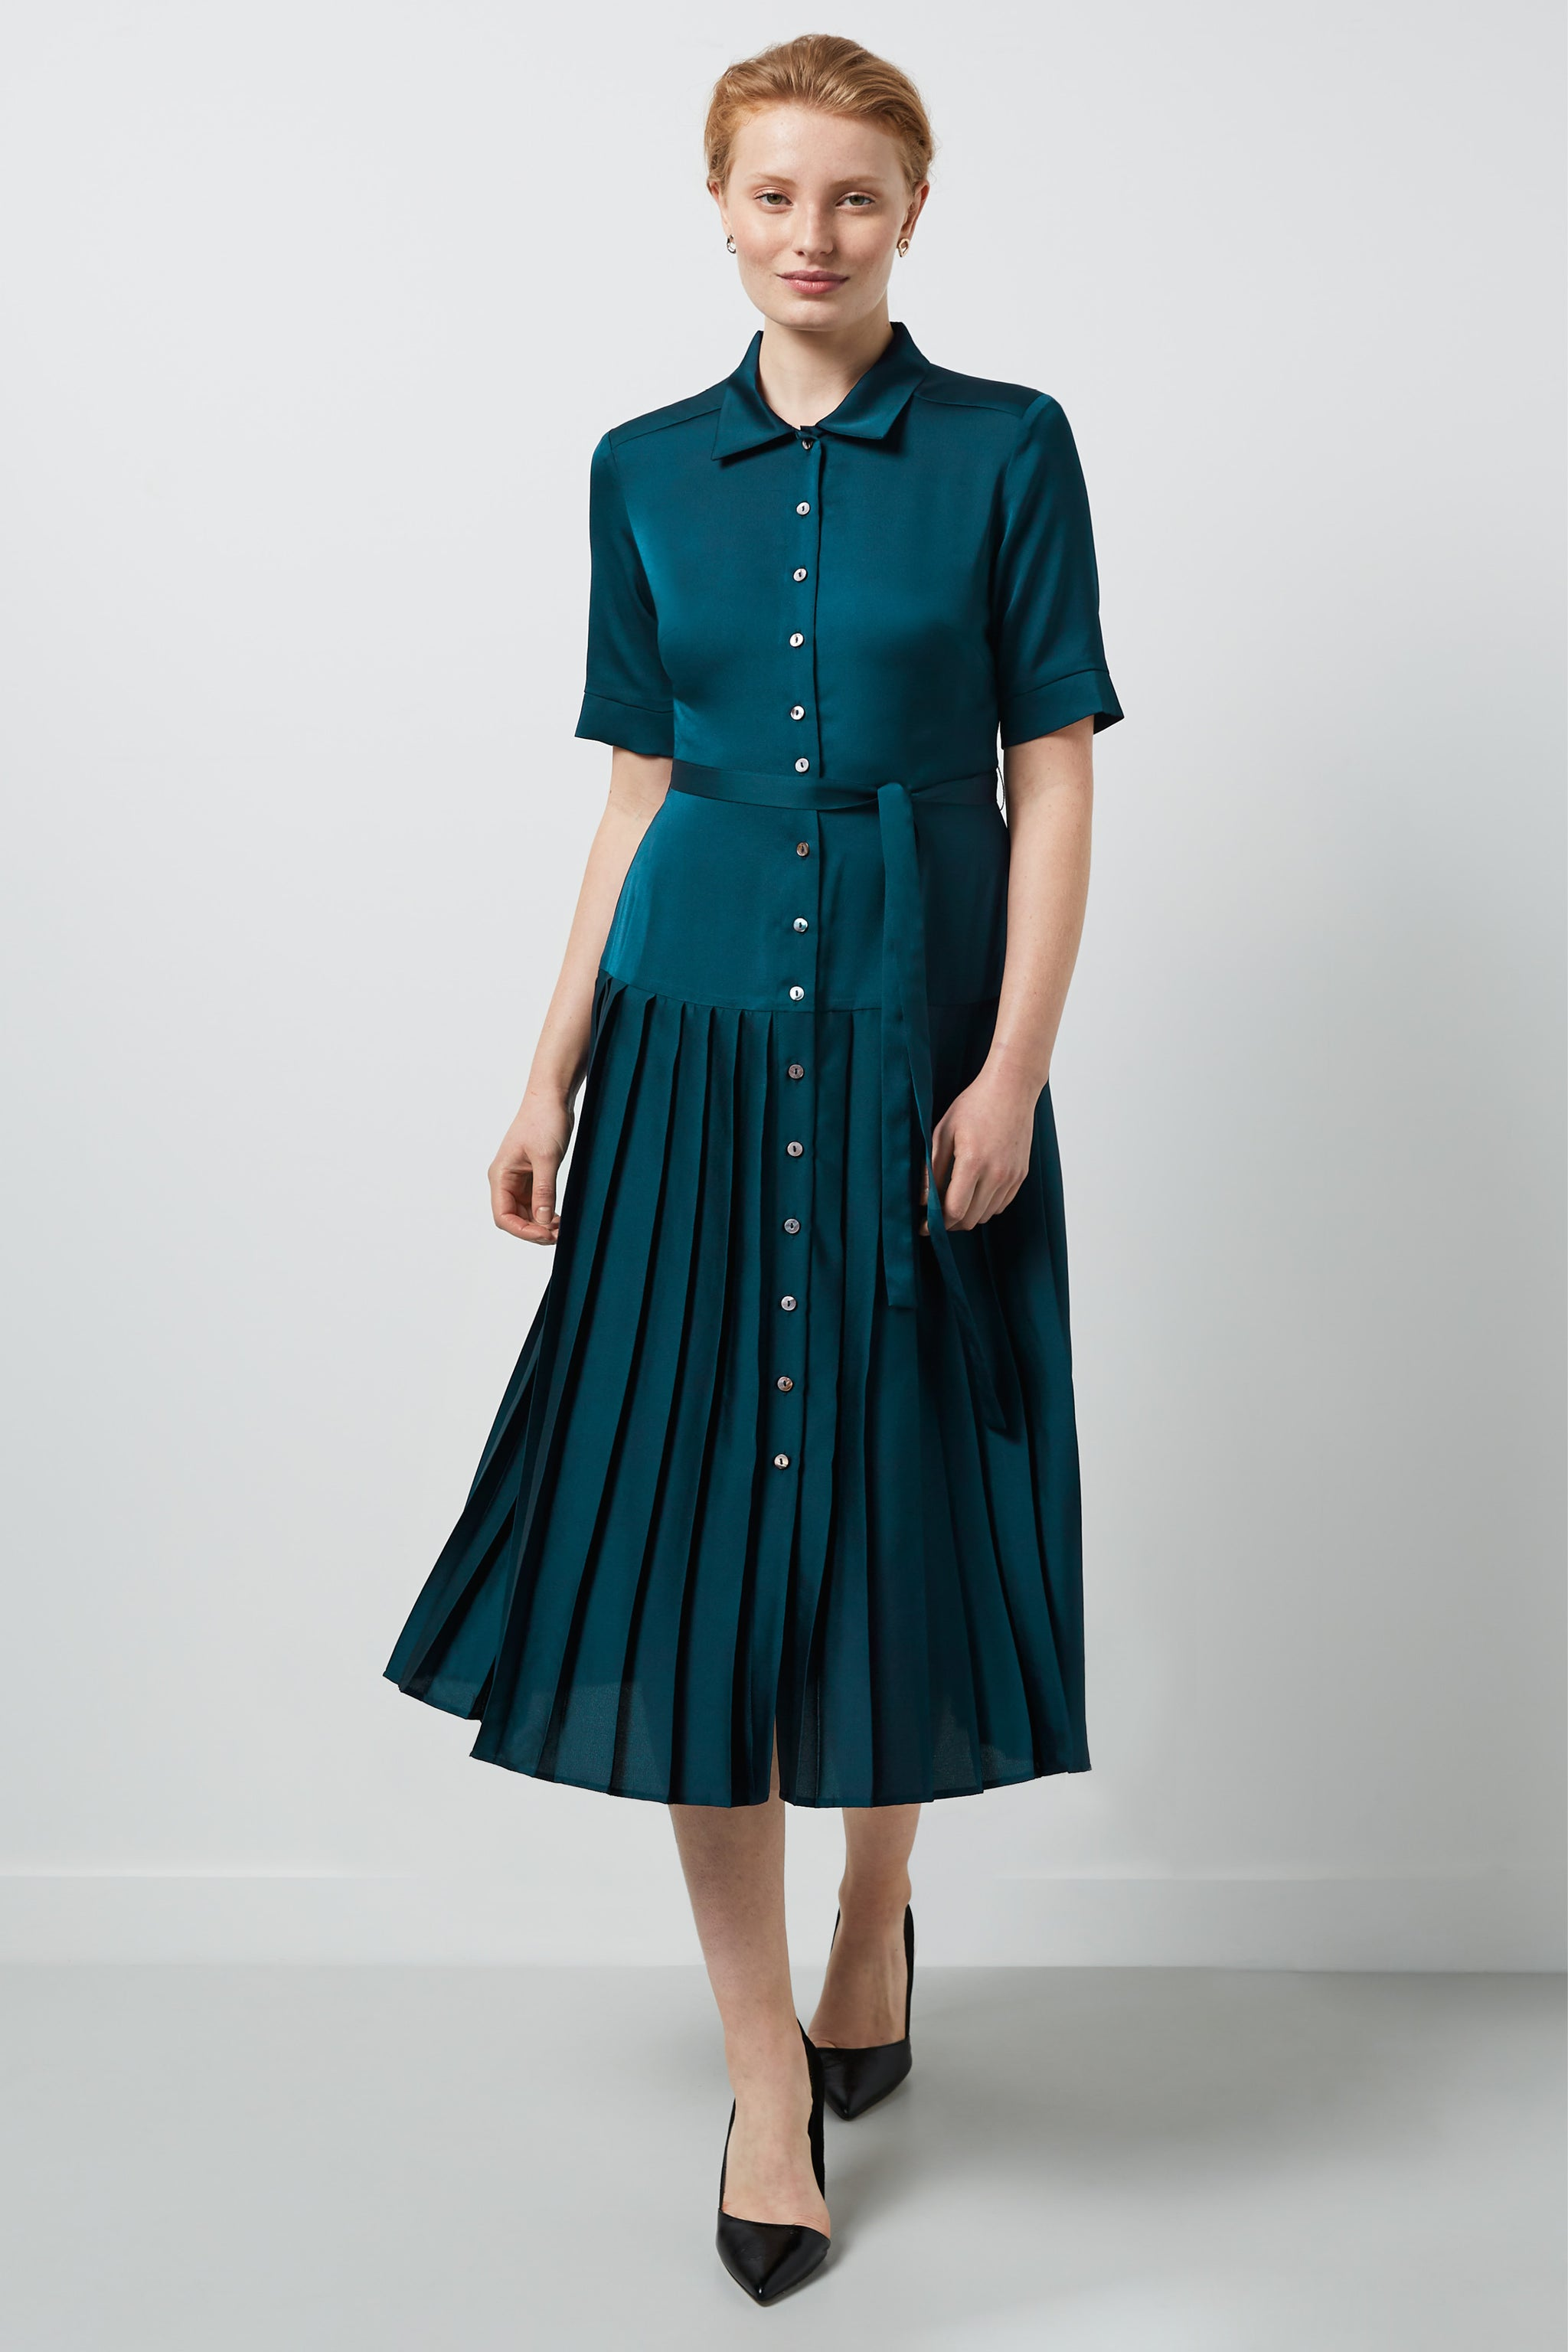 Tavistock Teal Shirt Dress